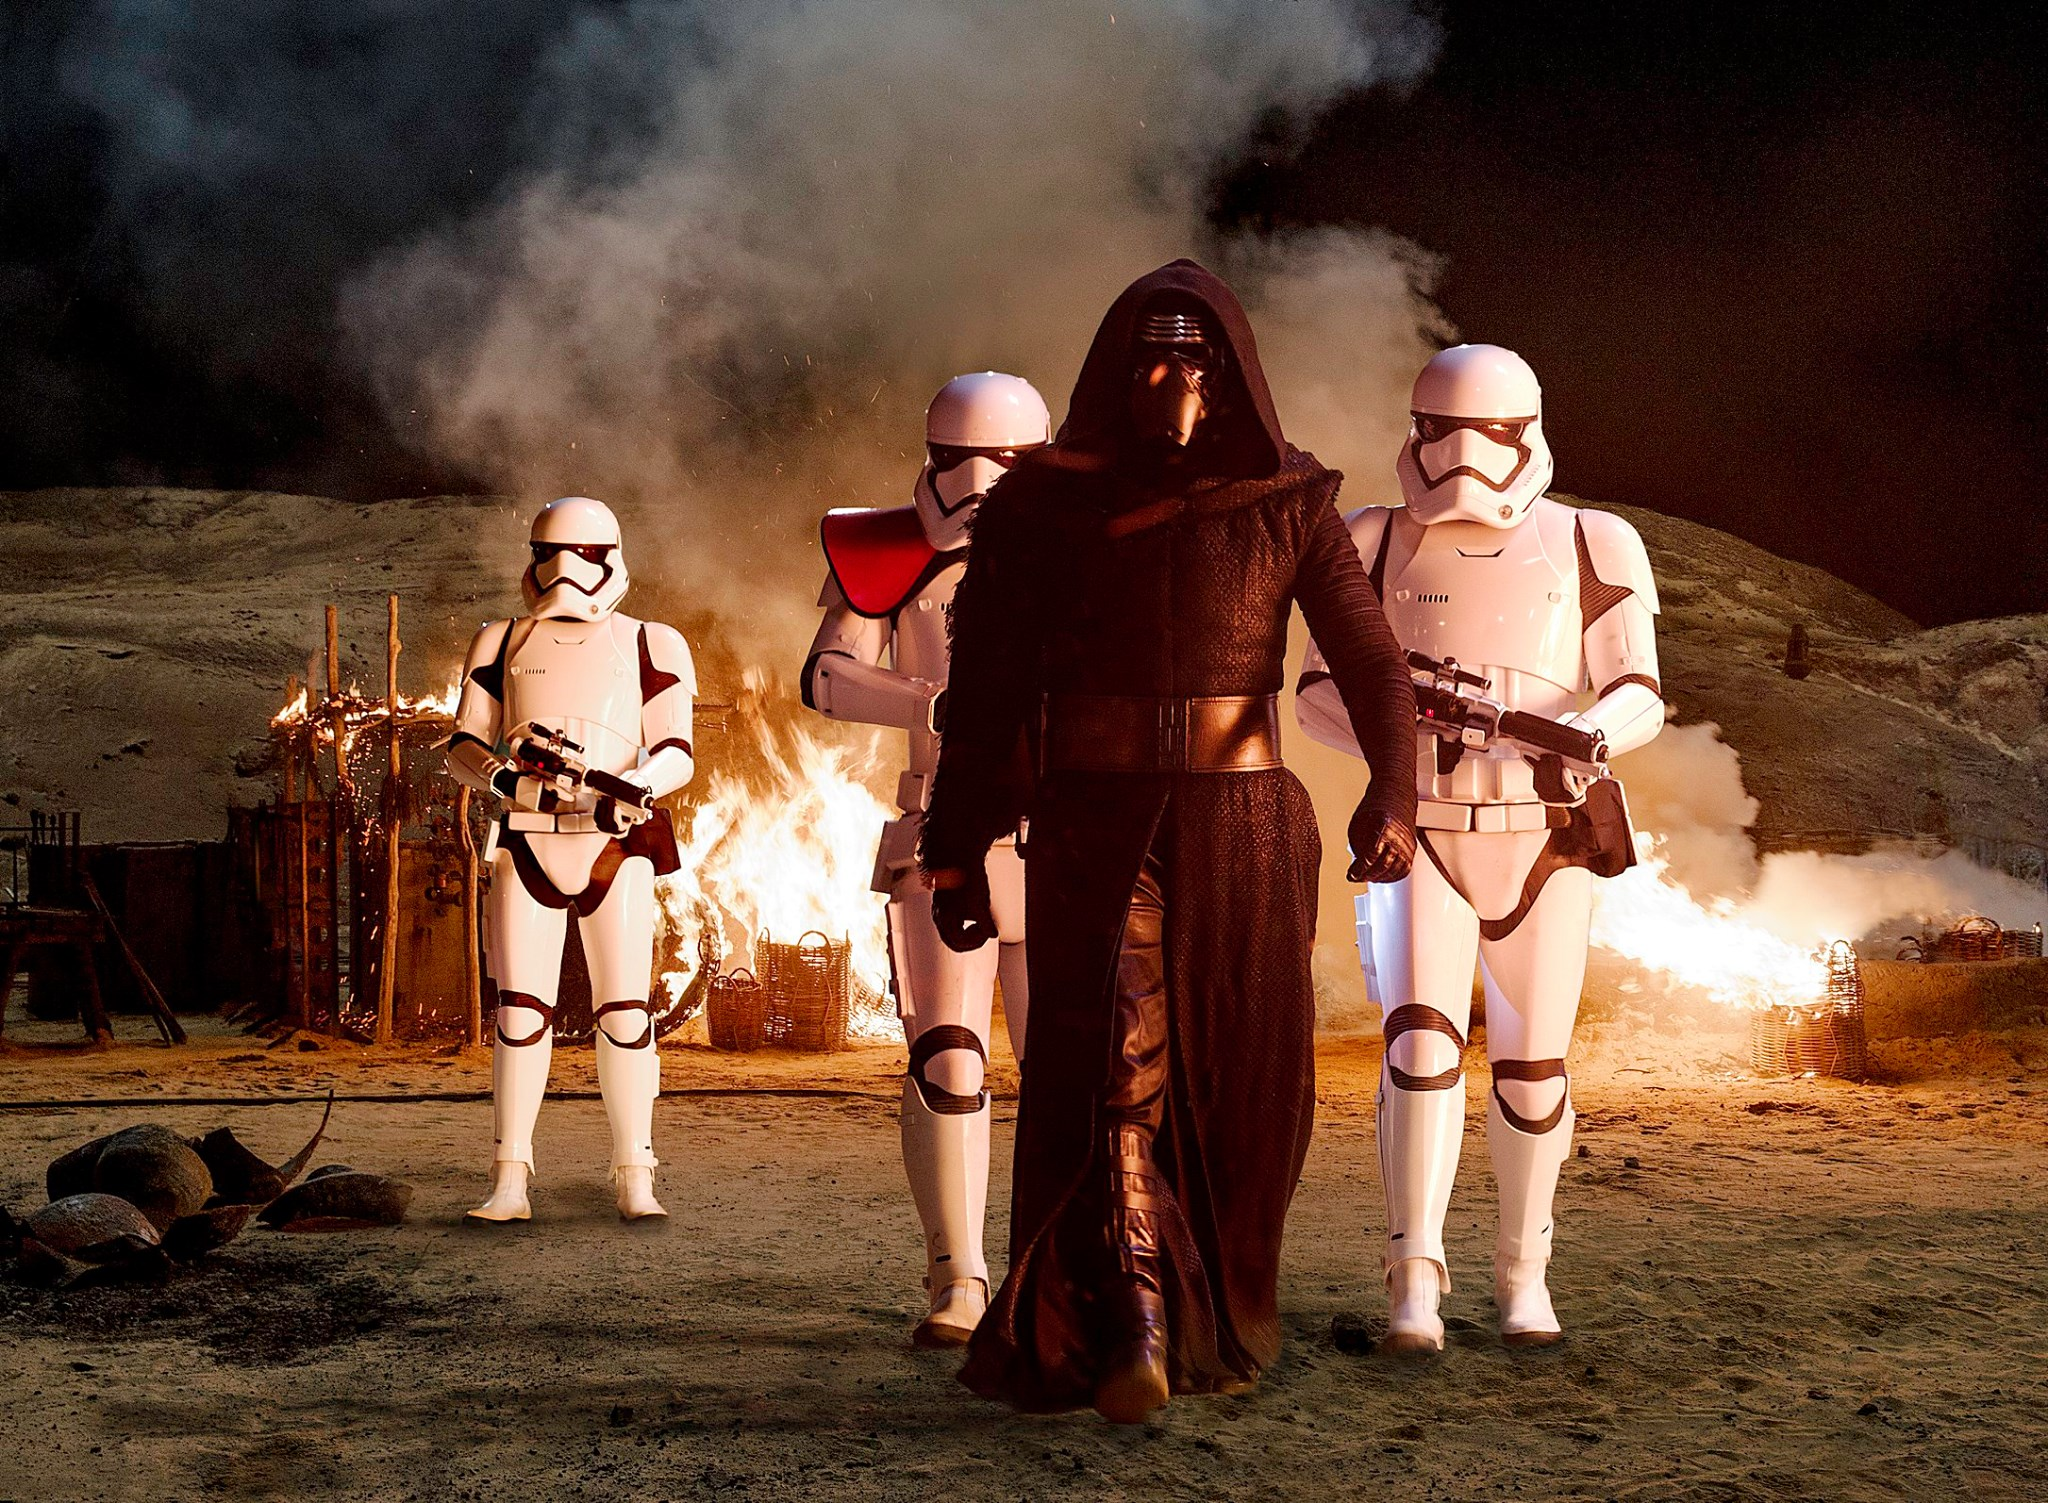 jedi, spoilers galore, star wars 7, Star Wars: The Force Awakens, the resistance